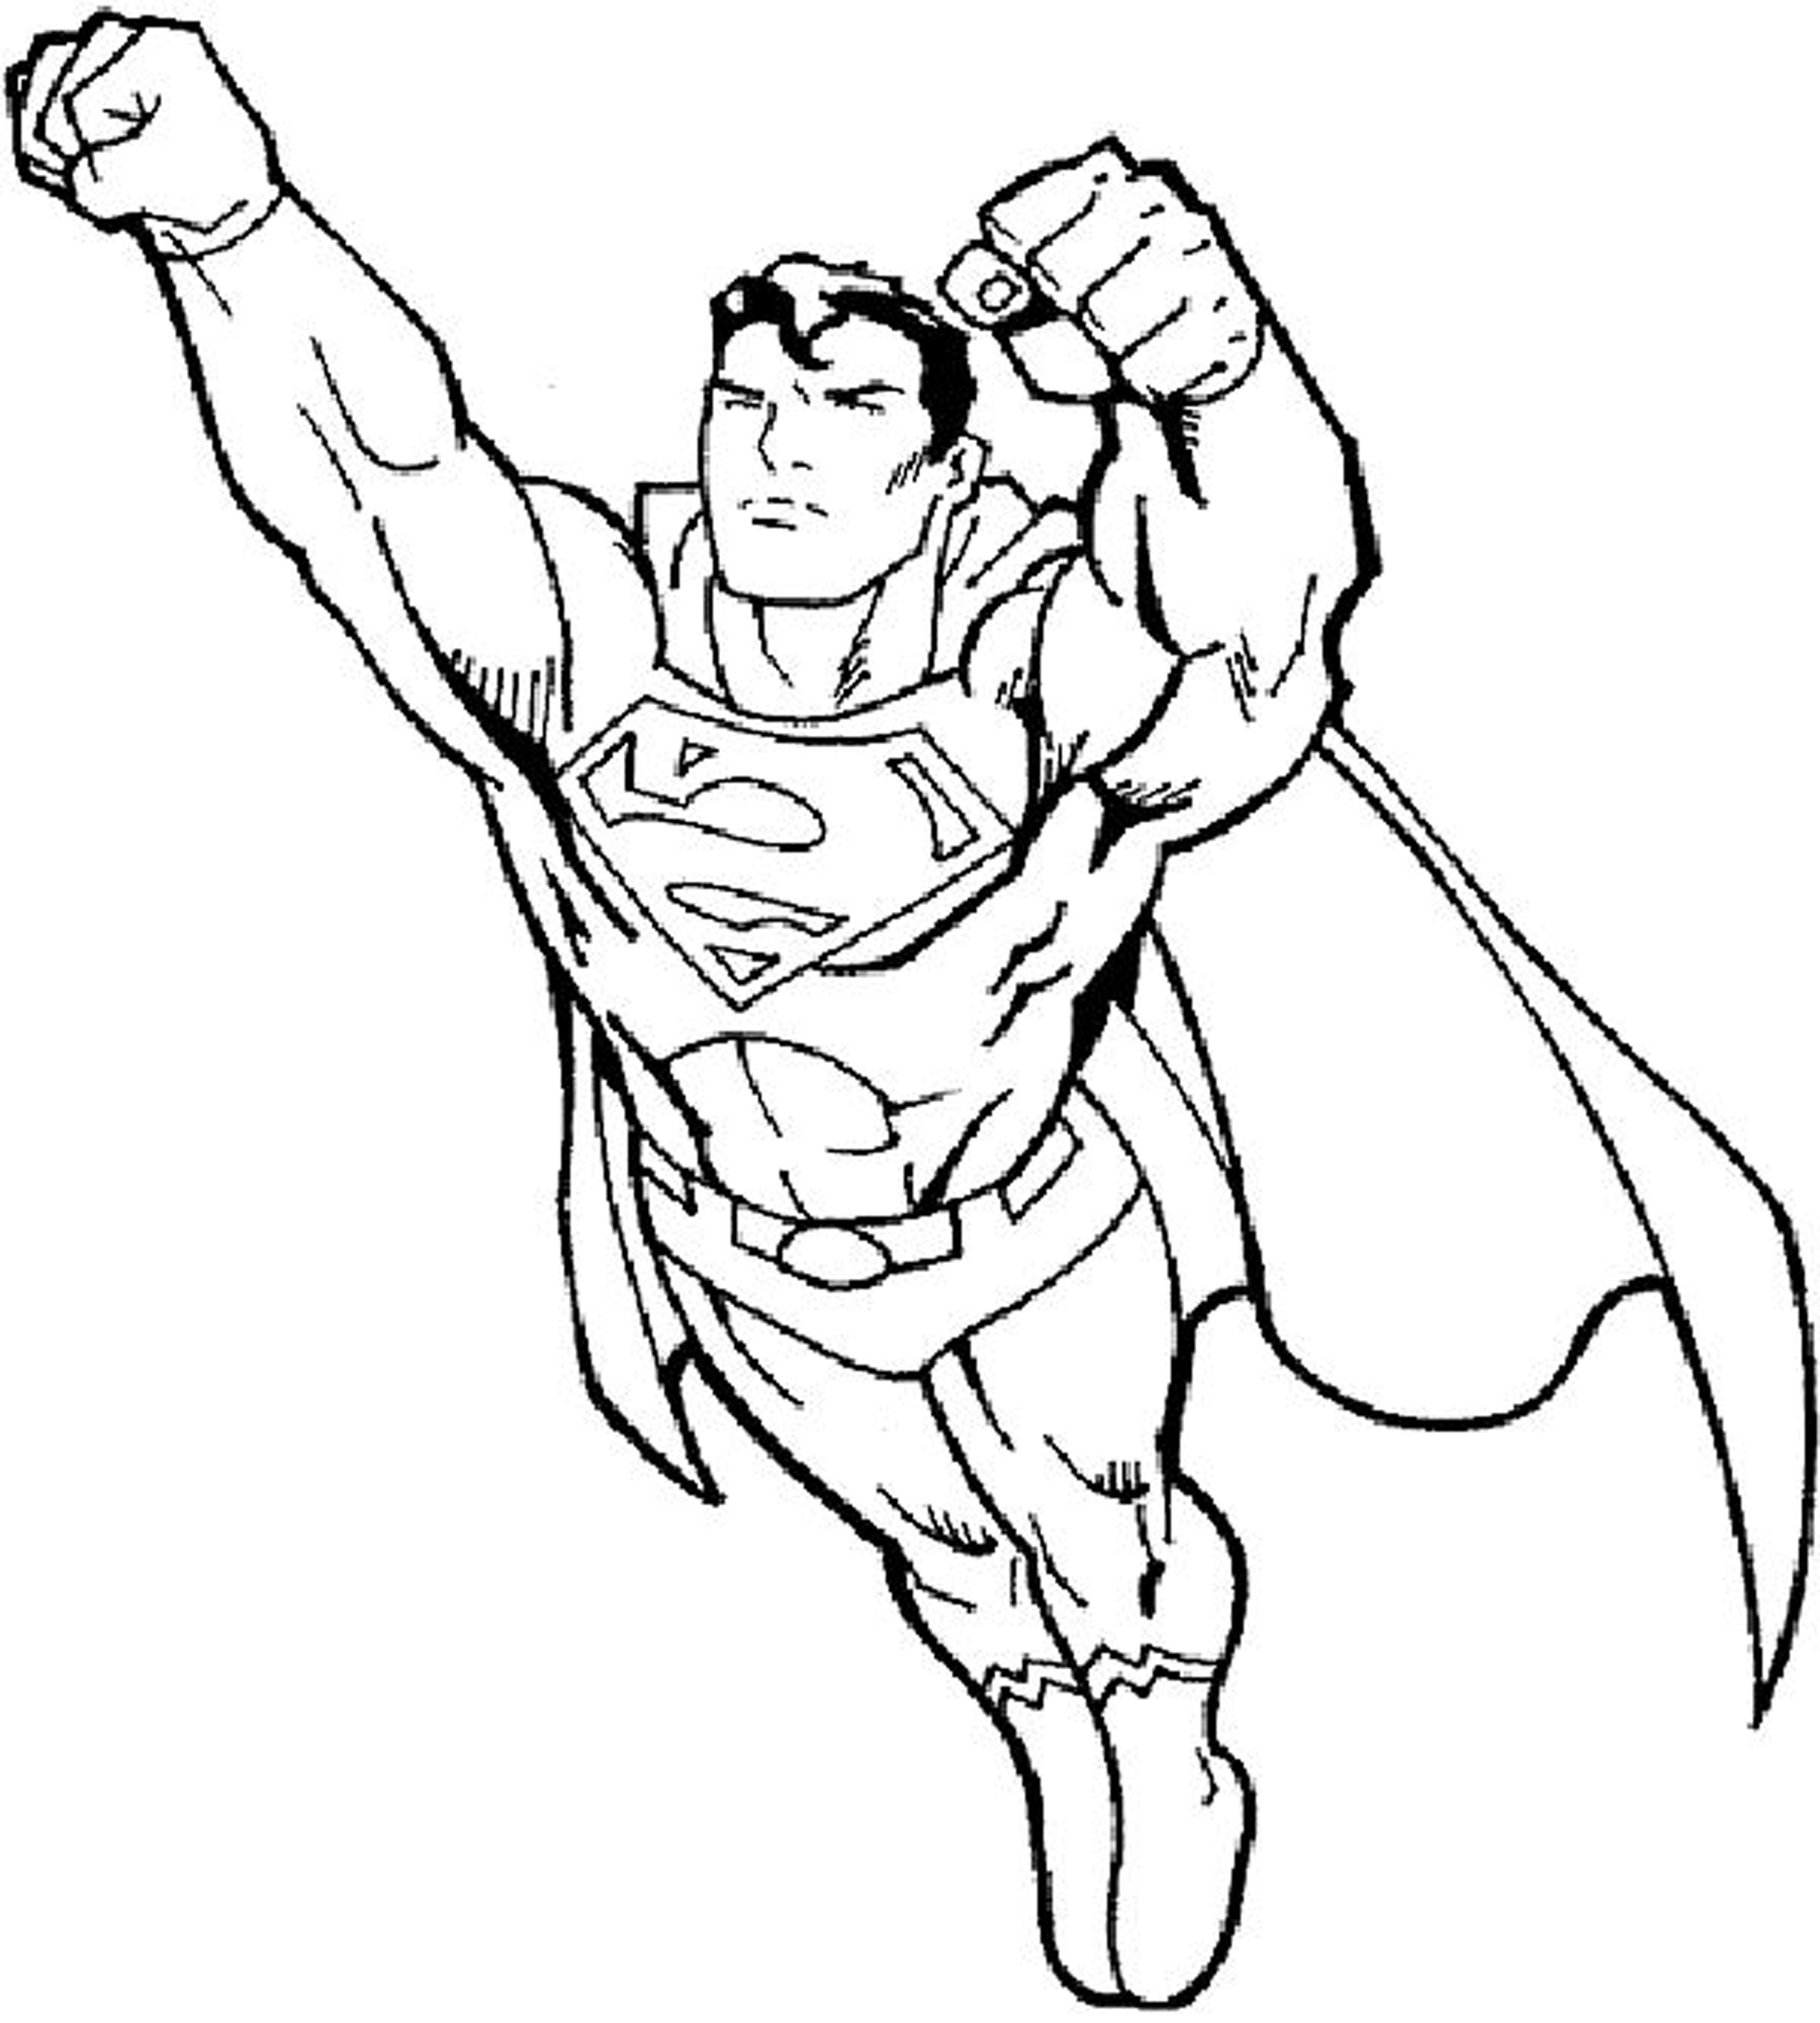 Superman Auto Ausmalbilder : 25 Clone Wars Coloring Pages Collections Free Coloring Pages